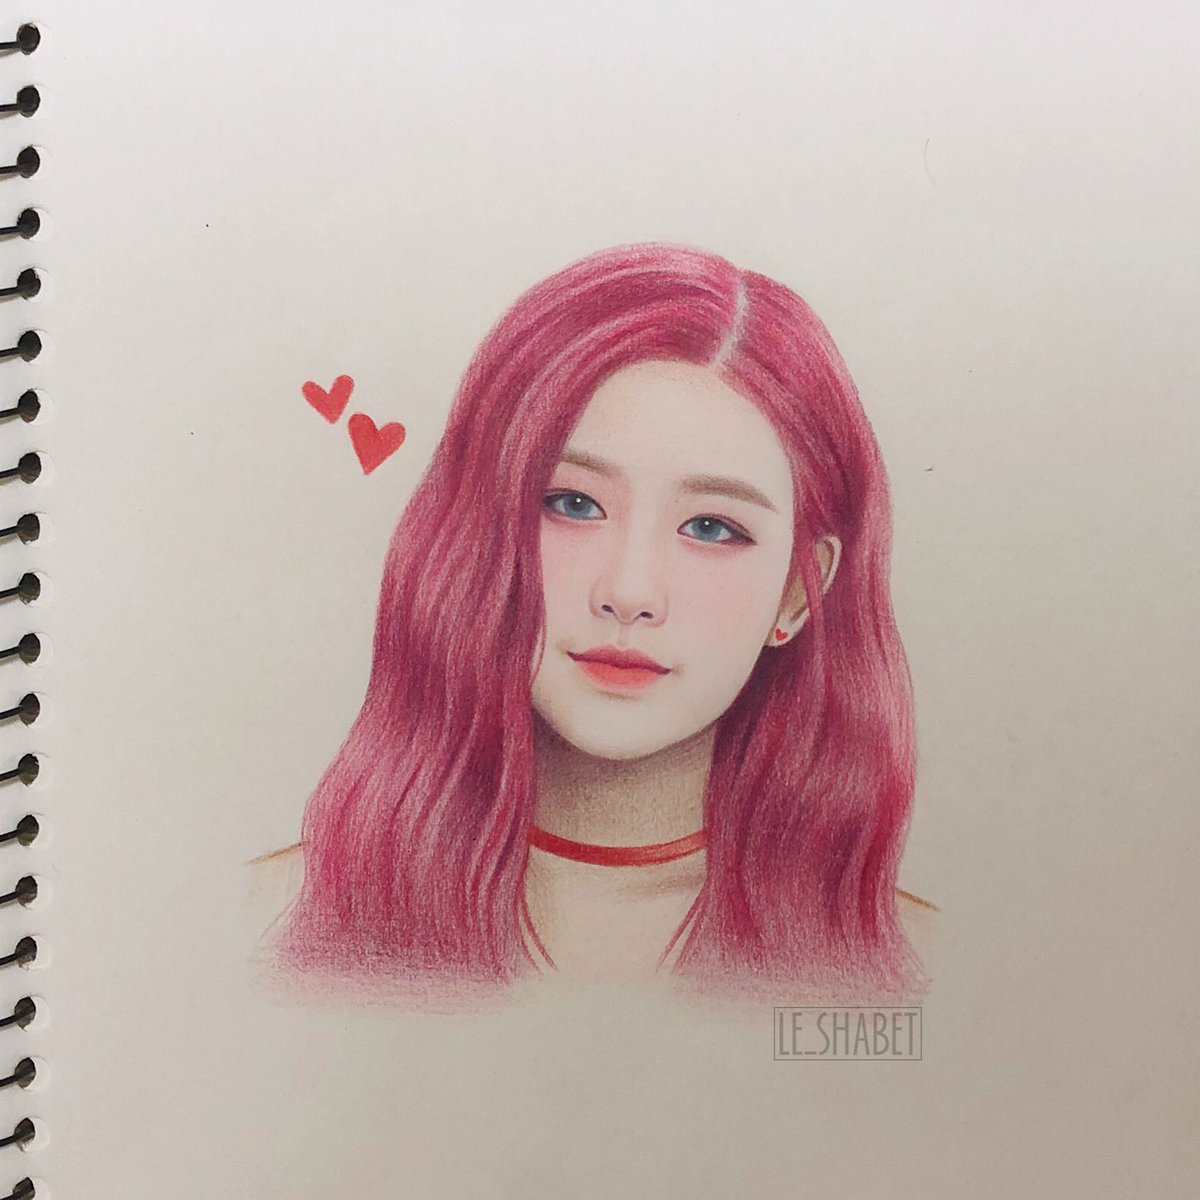 My fan art of Róé, rosé pinky hair 🌷🌷💖  #blackpink #rosé⁠ ⁠⁠ ⁠ #blackpinkrosé #블랙핑크 #로제 #lisafanart #blackpinkfanart